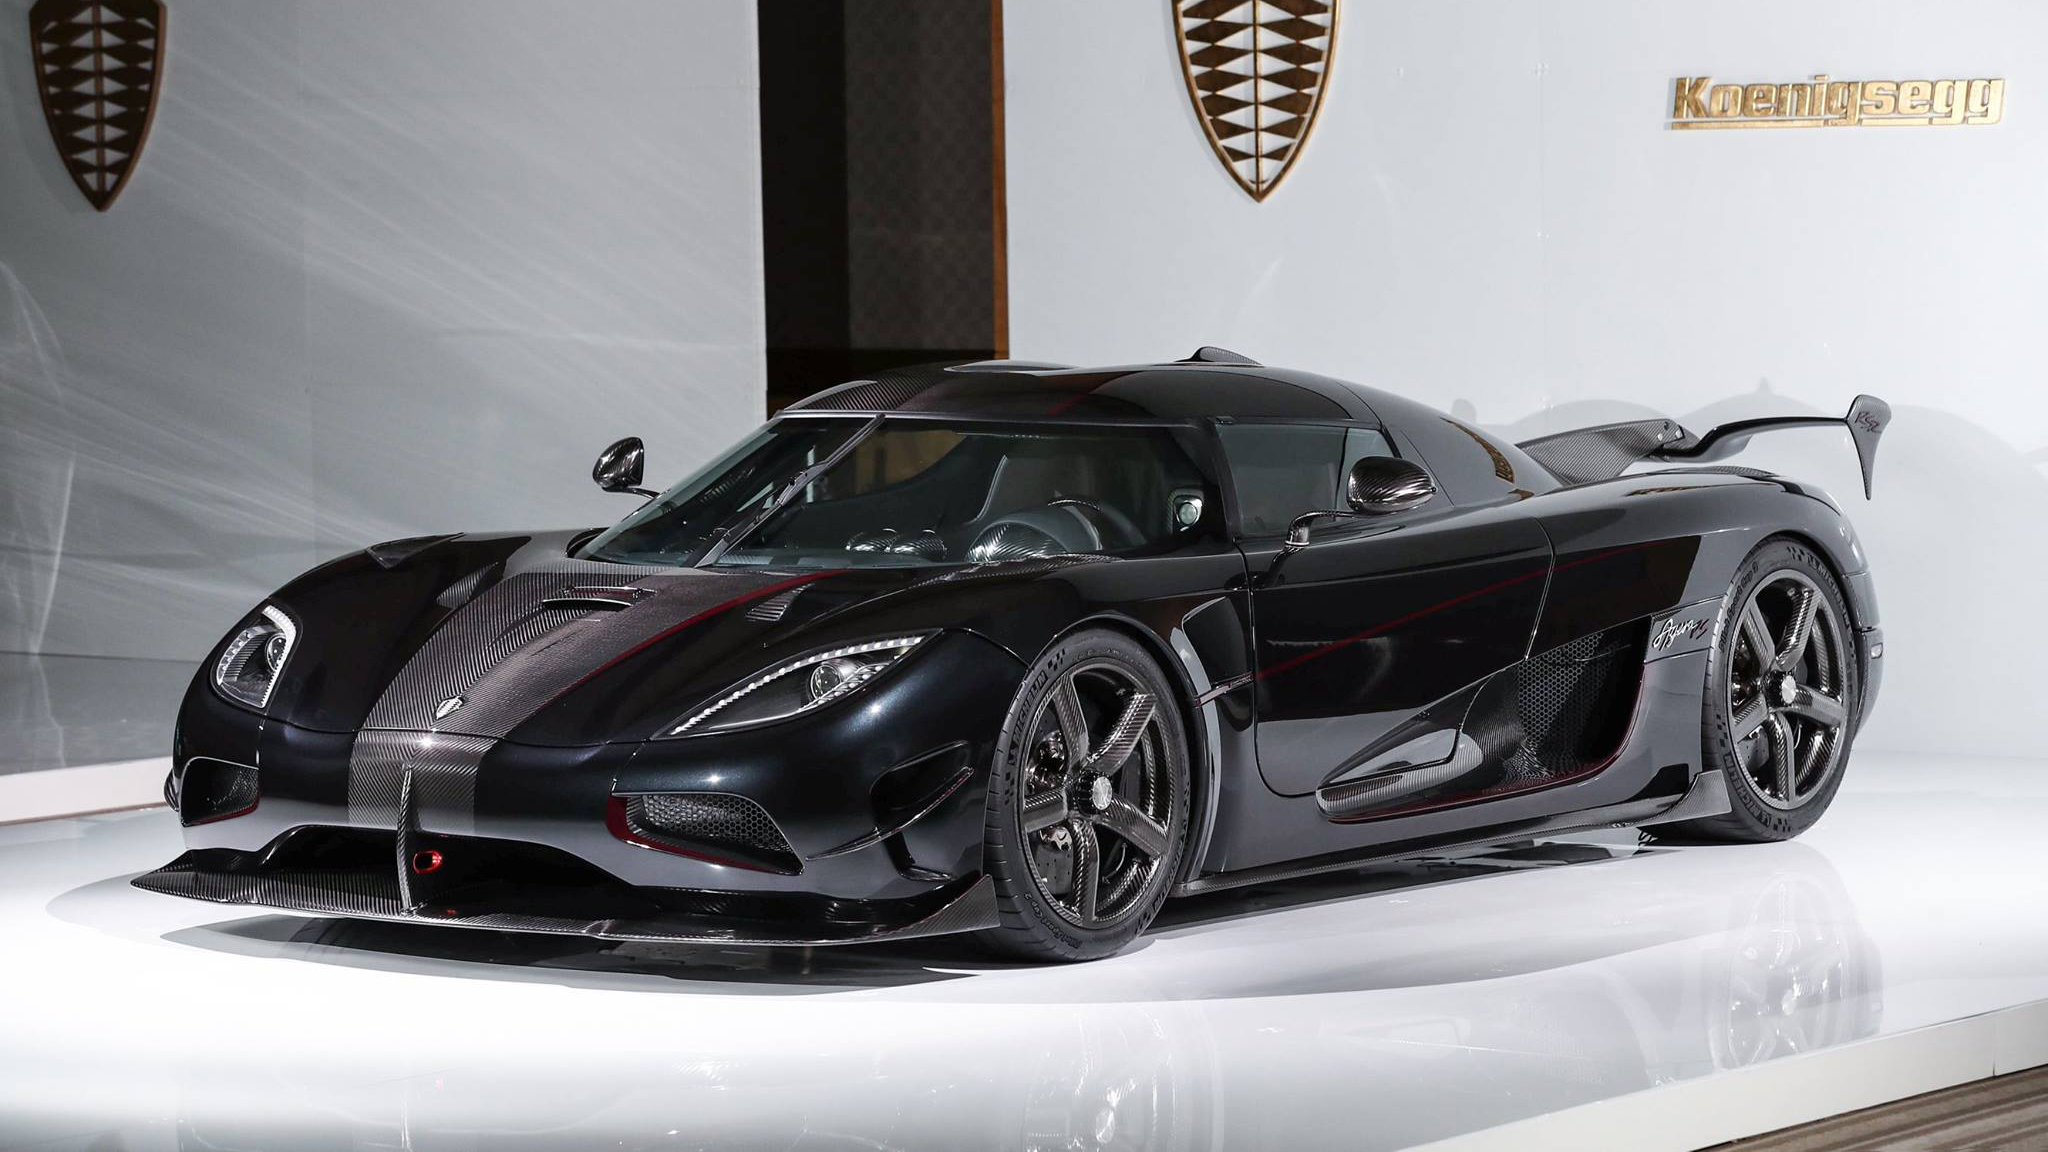 New world's fastest auto? Koenigsegg tease 'more capable' Agera RS replacement